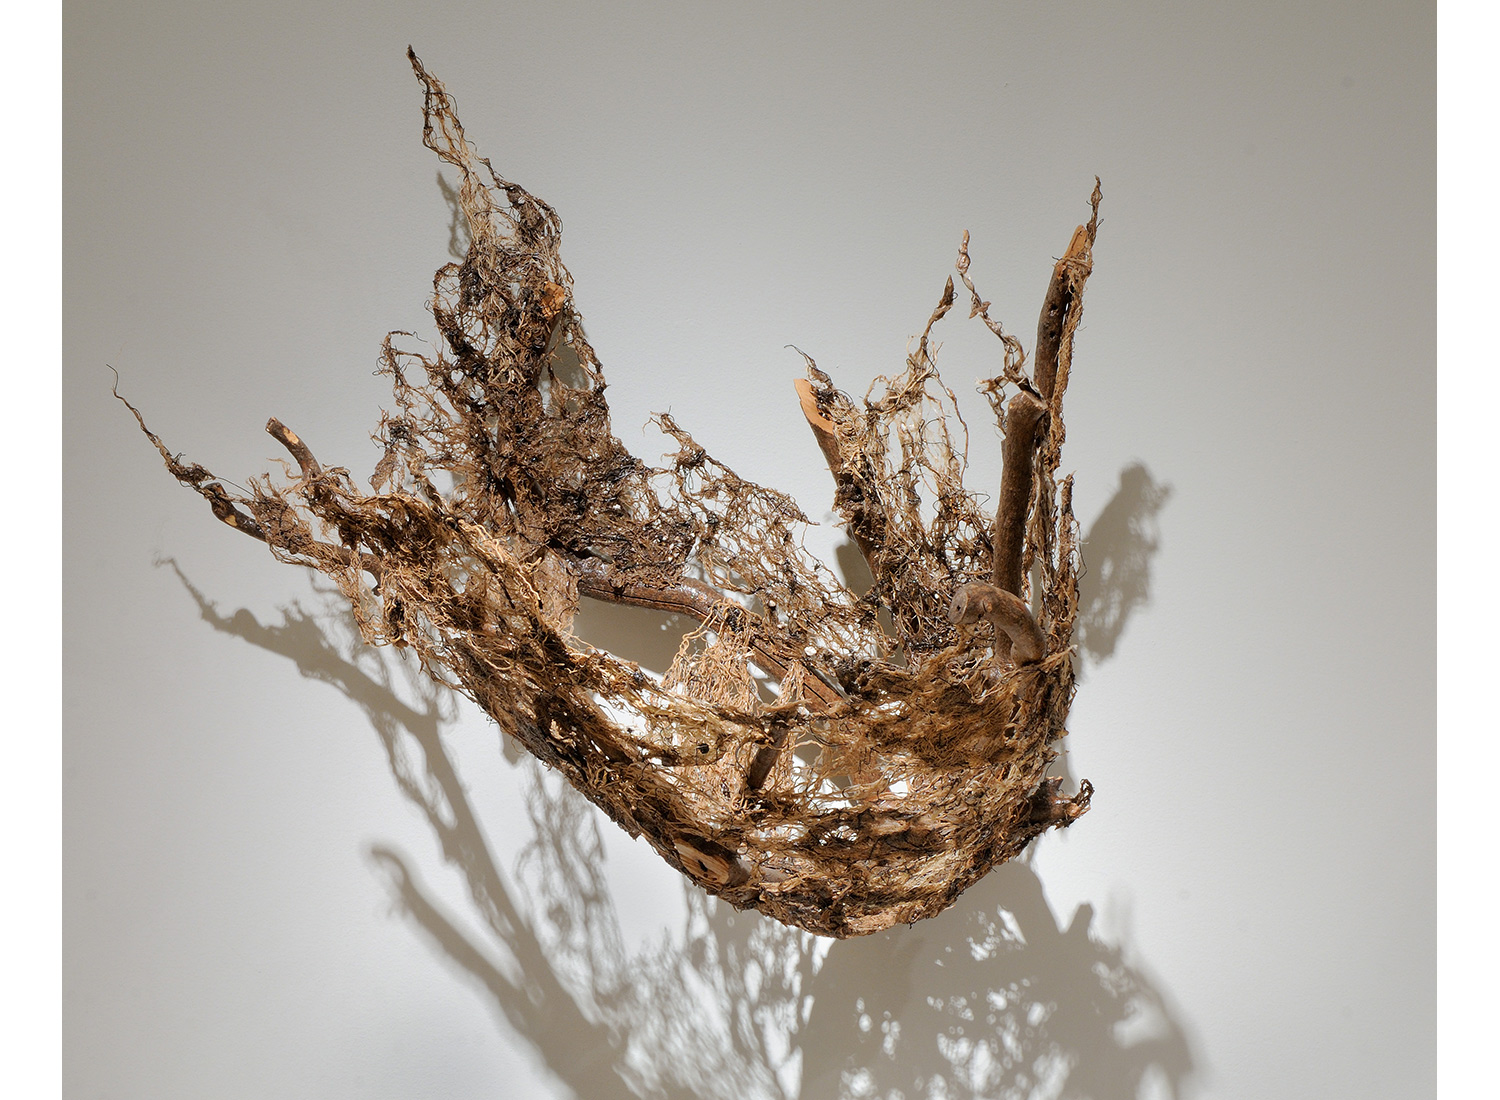 Runaway natural art sculpture from Donna Forma